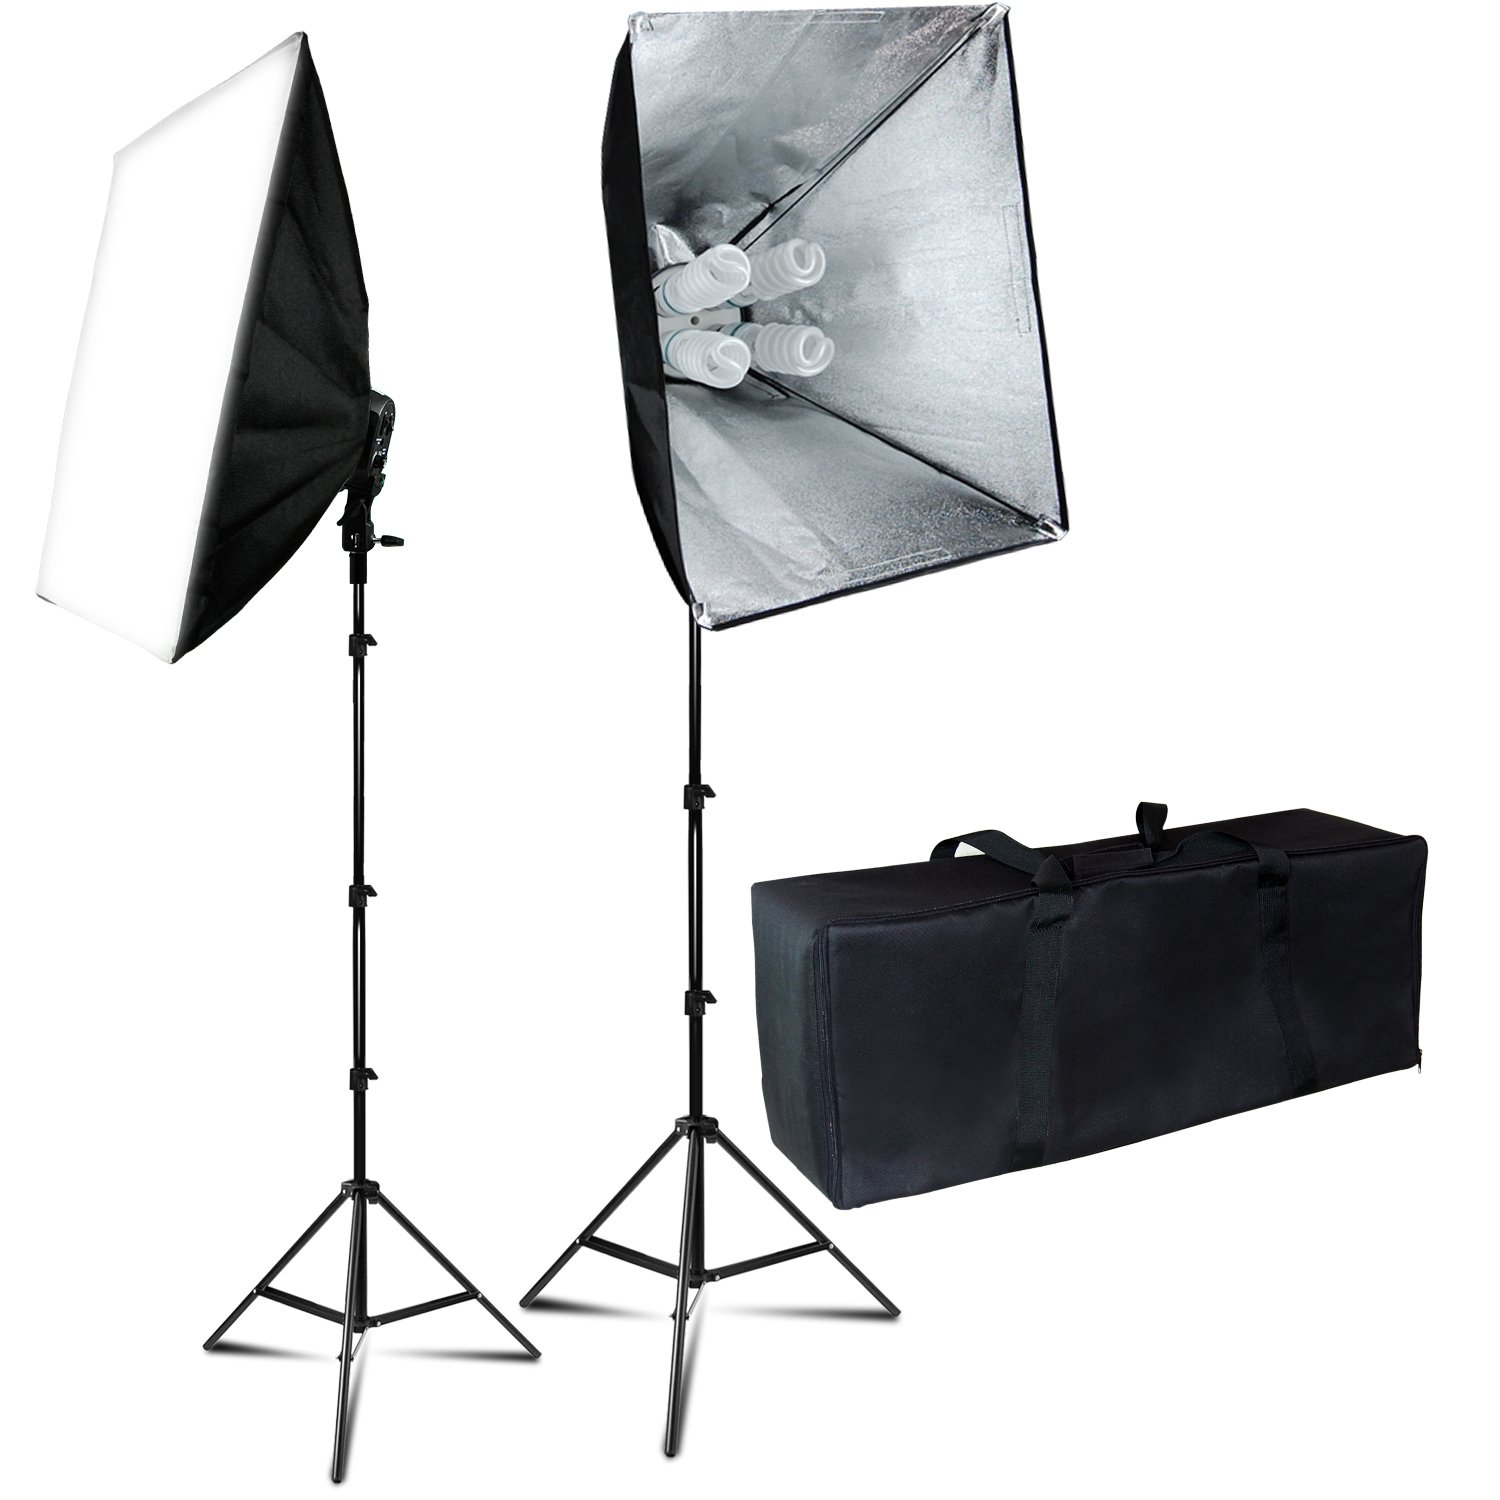 Julius Studio 24''X16'' Soft Box Photography Continuous 800W Lighting Kit Photo Studio Equipment with 4 Socket Light Bulb Adaptor, 8pcs E27 Video Lighting Bulb, Portraits Shooting Box JSAG314V2 by Julius Studio